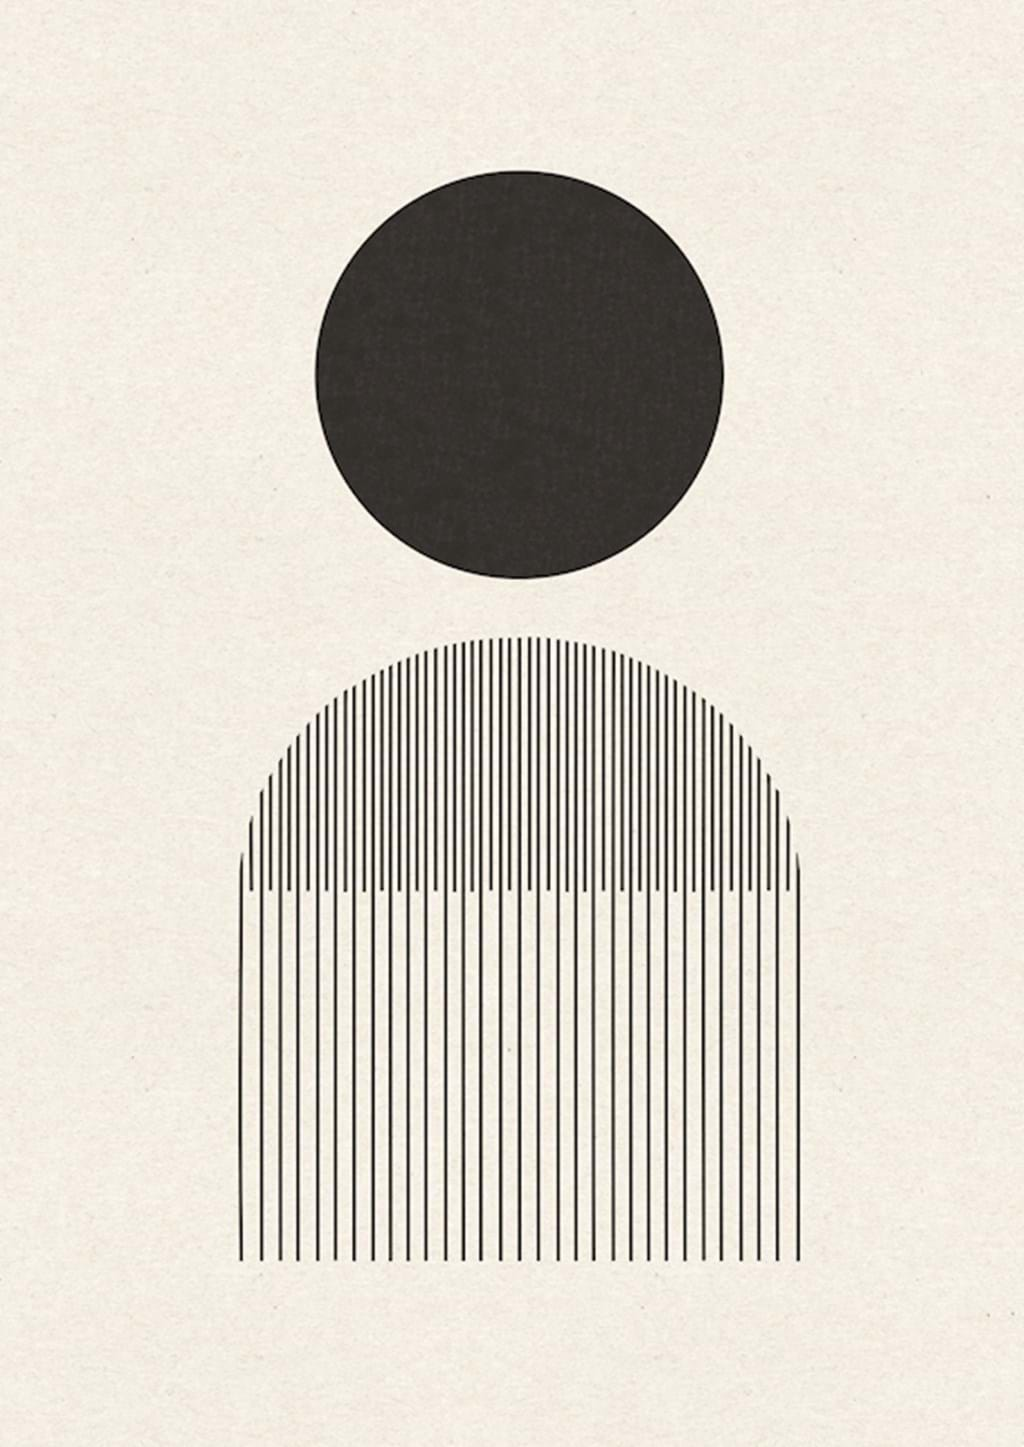 Poster: Comb - Digital